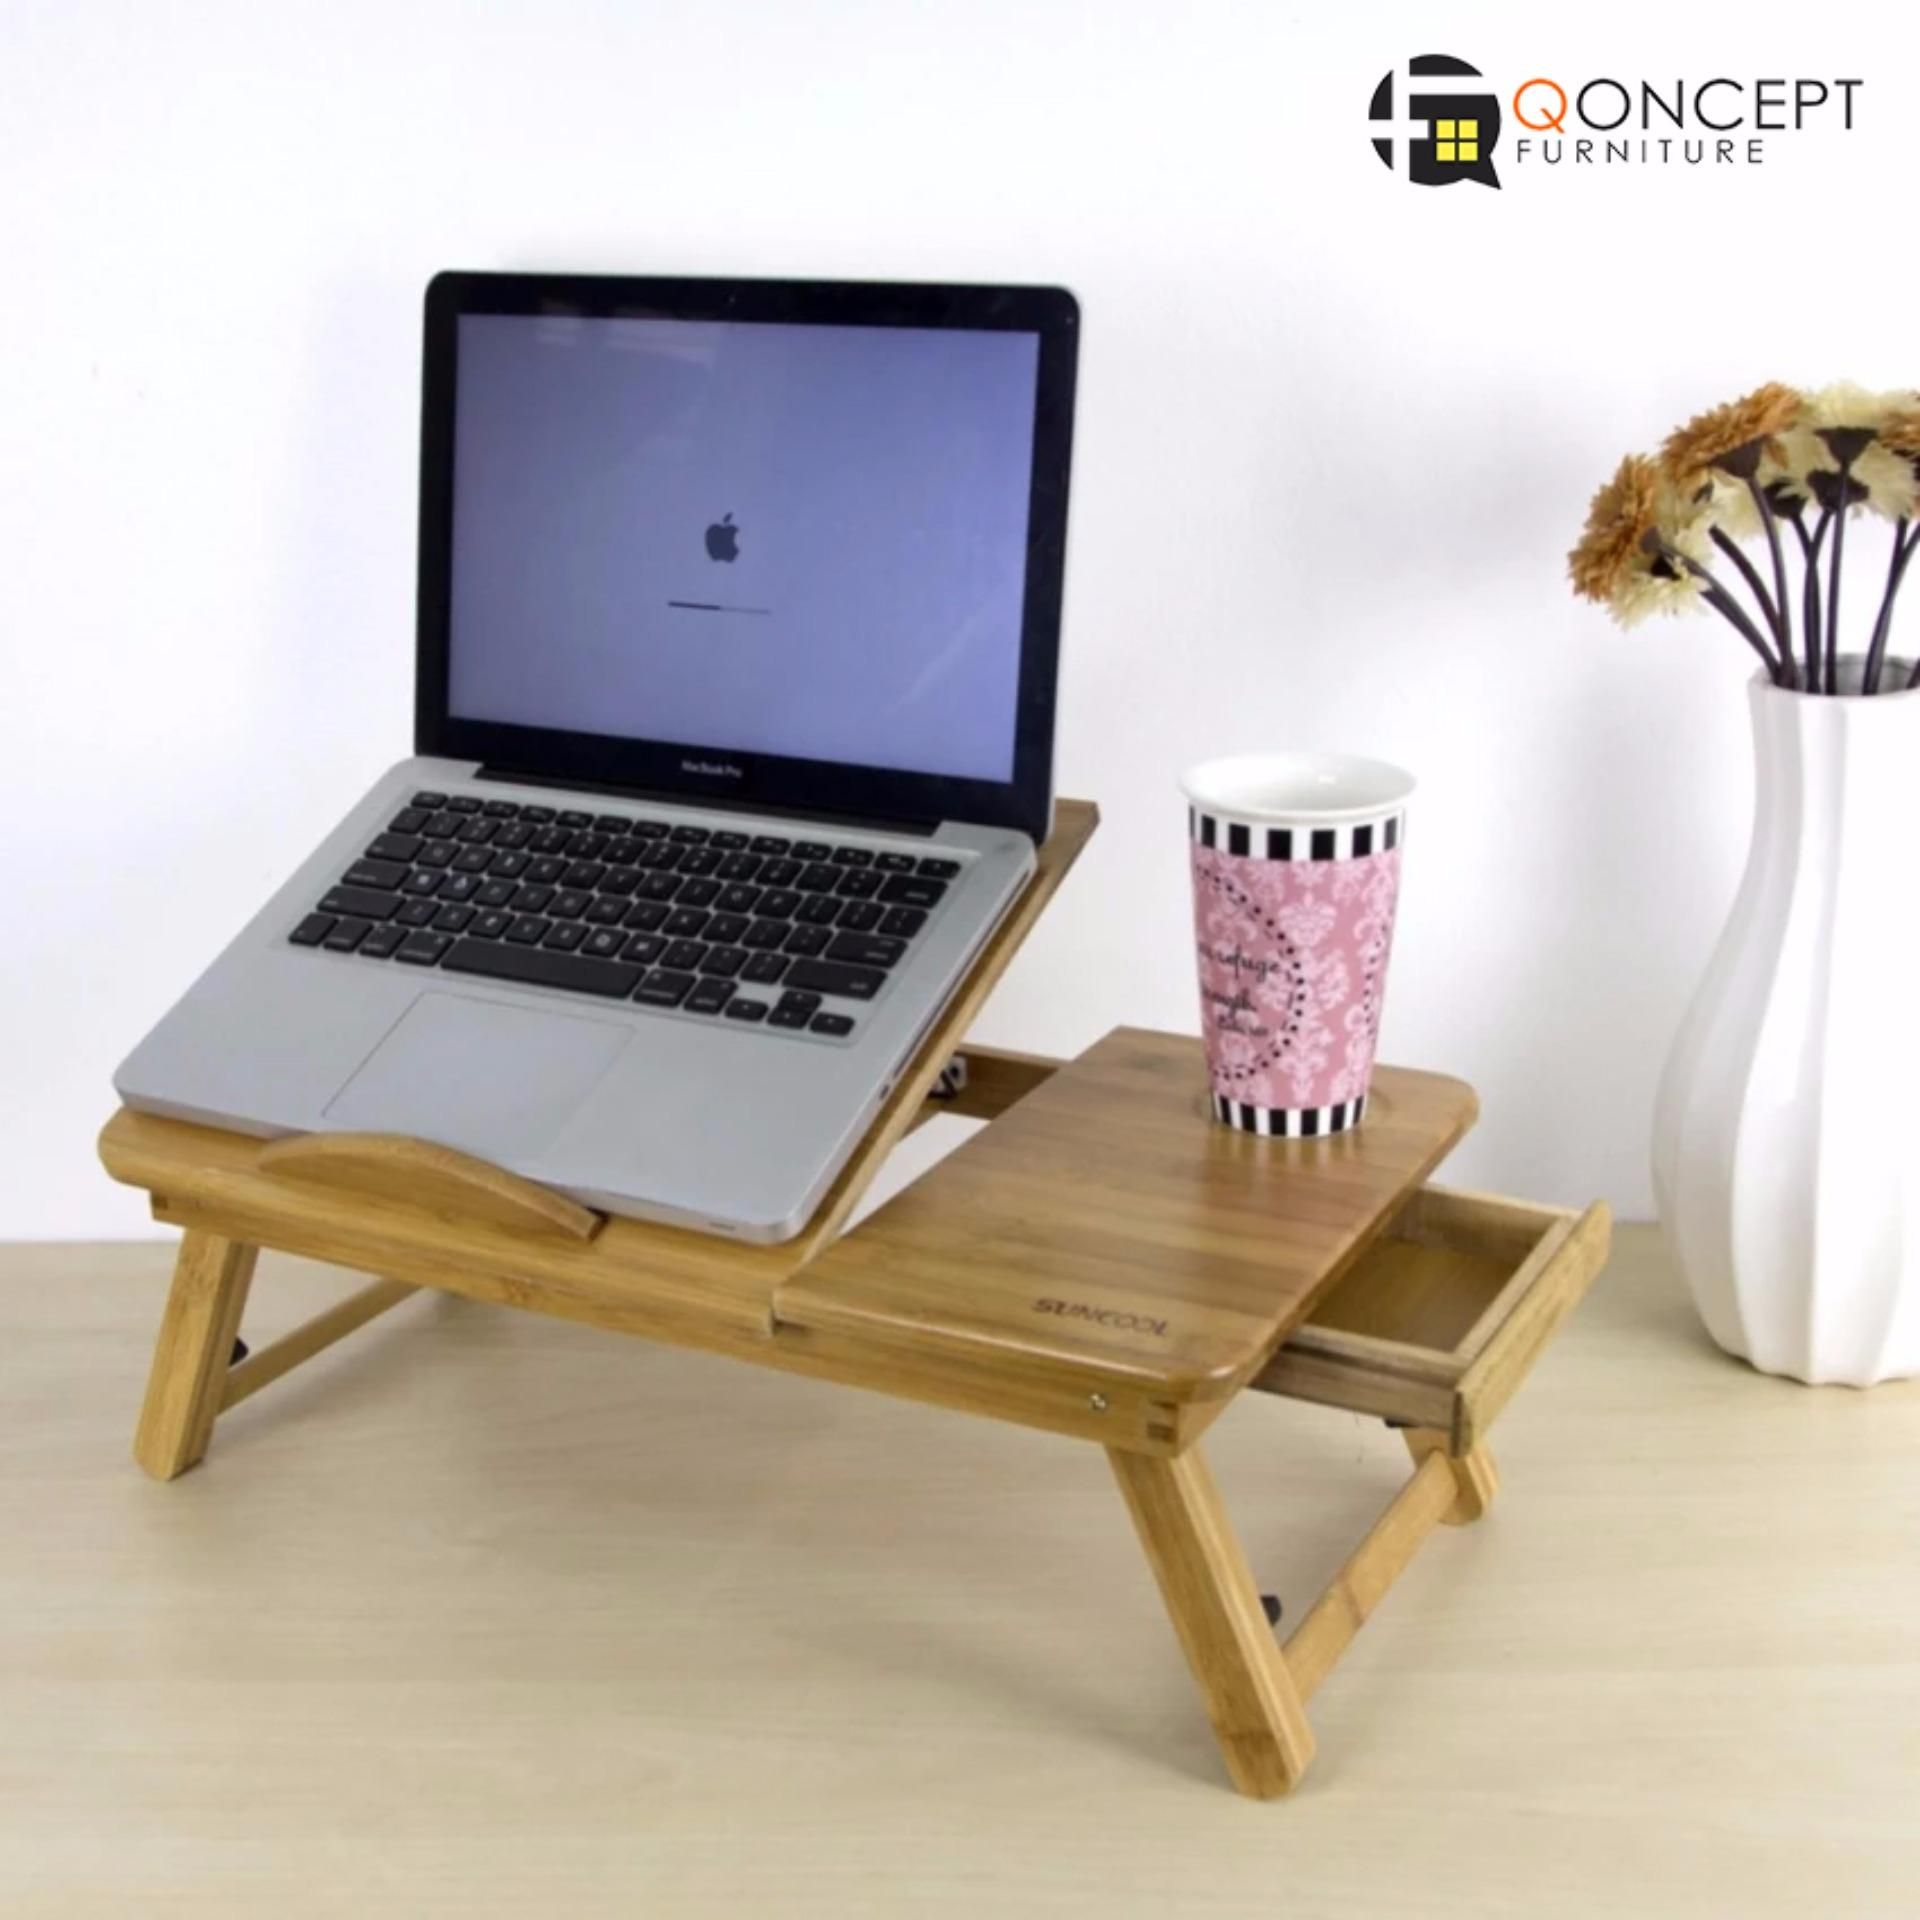 Qoncept Wooden Laptop Table Plain 50x30 Philippines